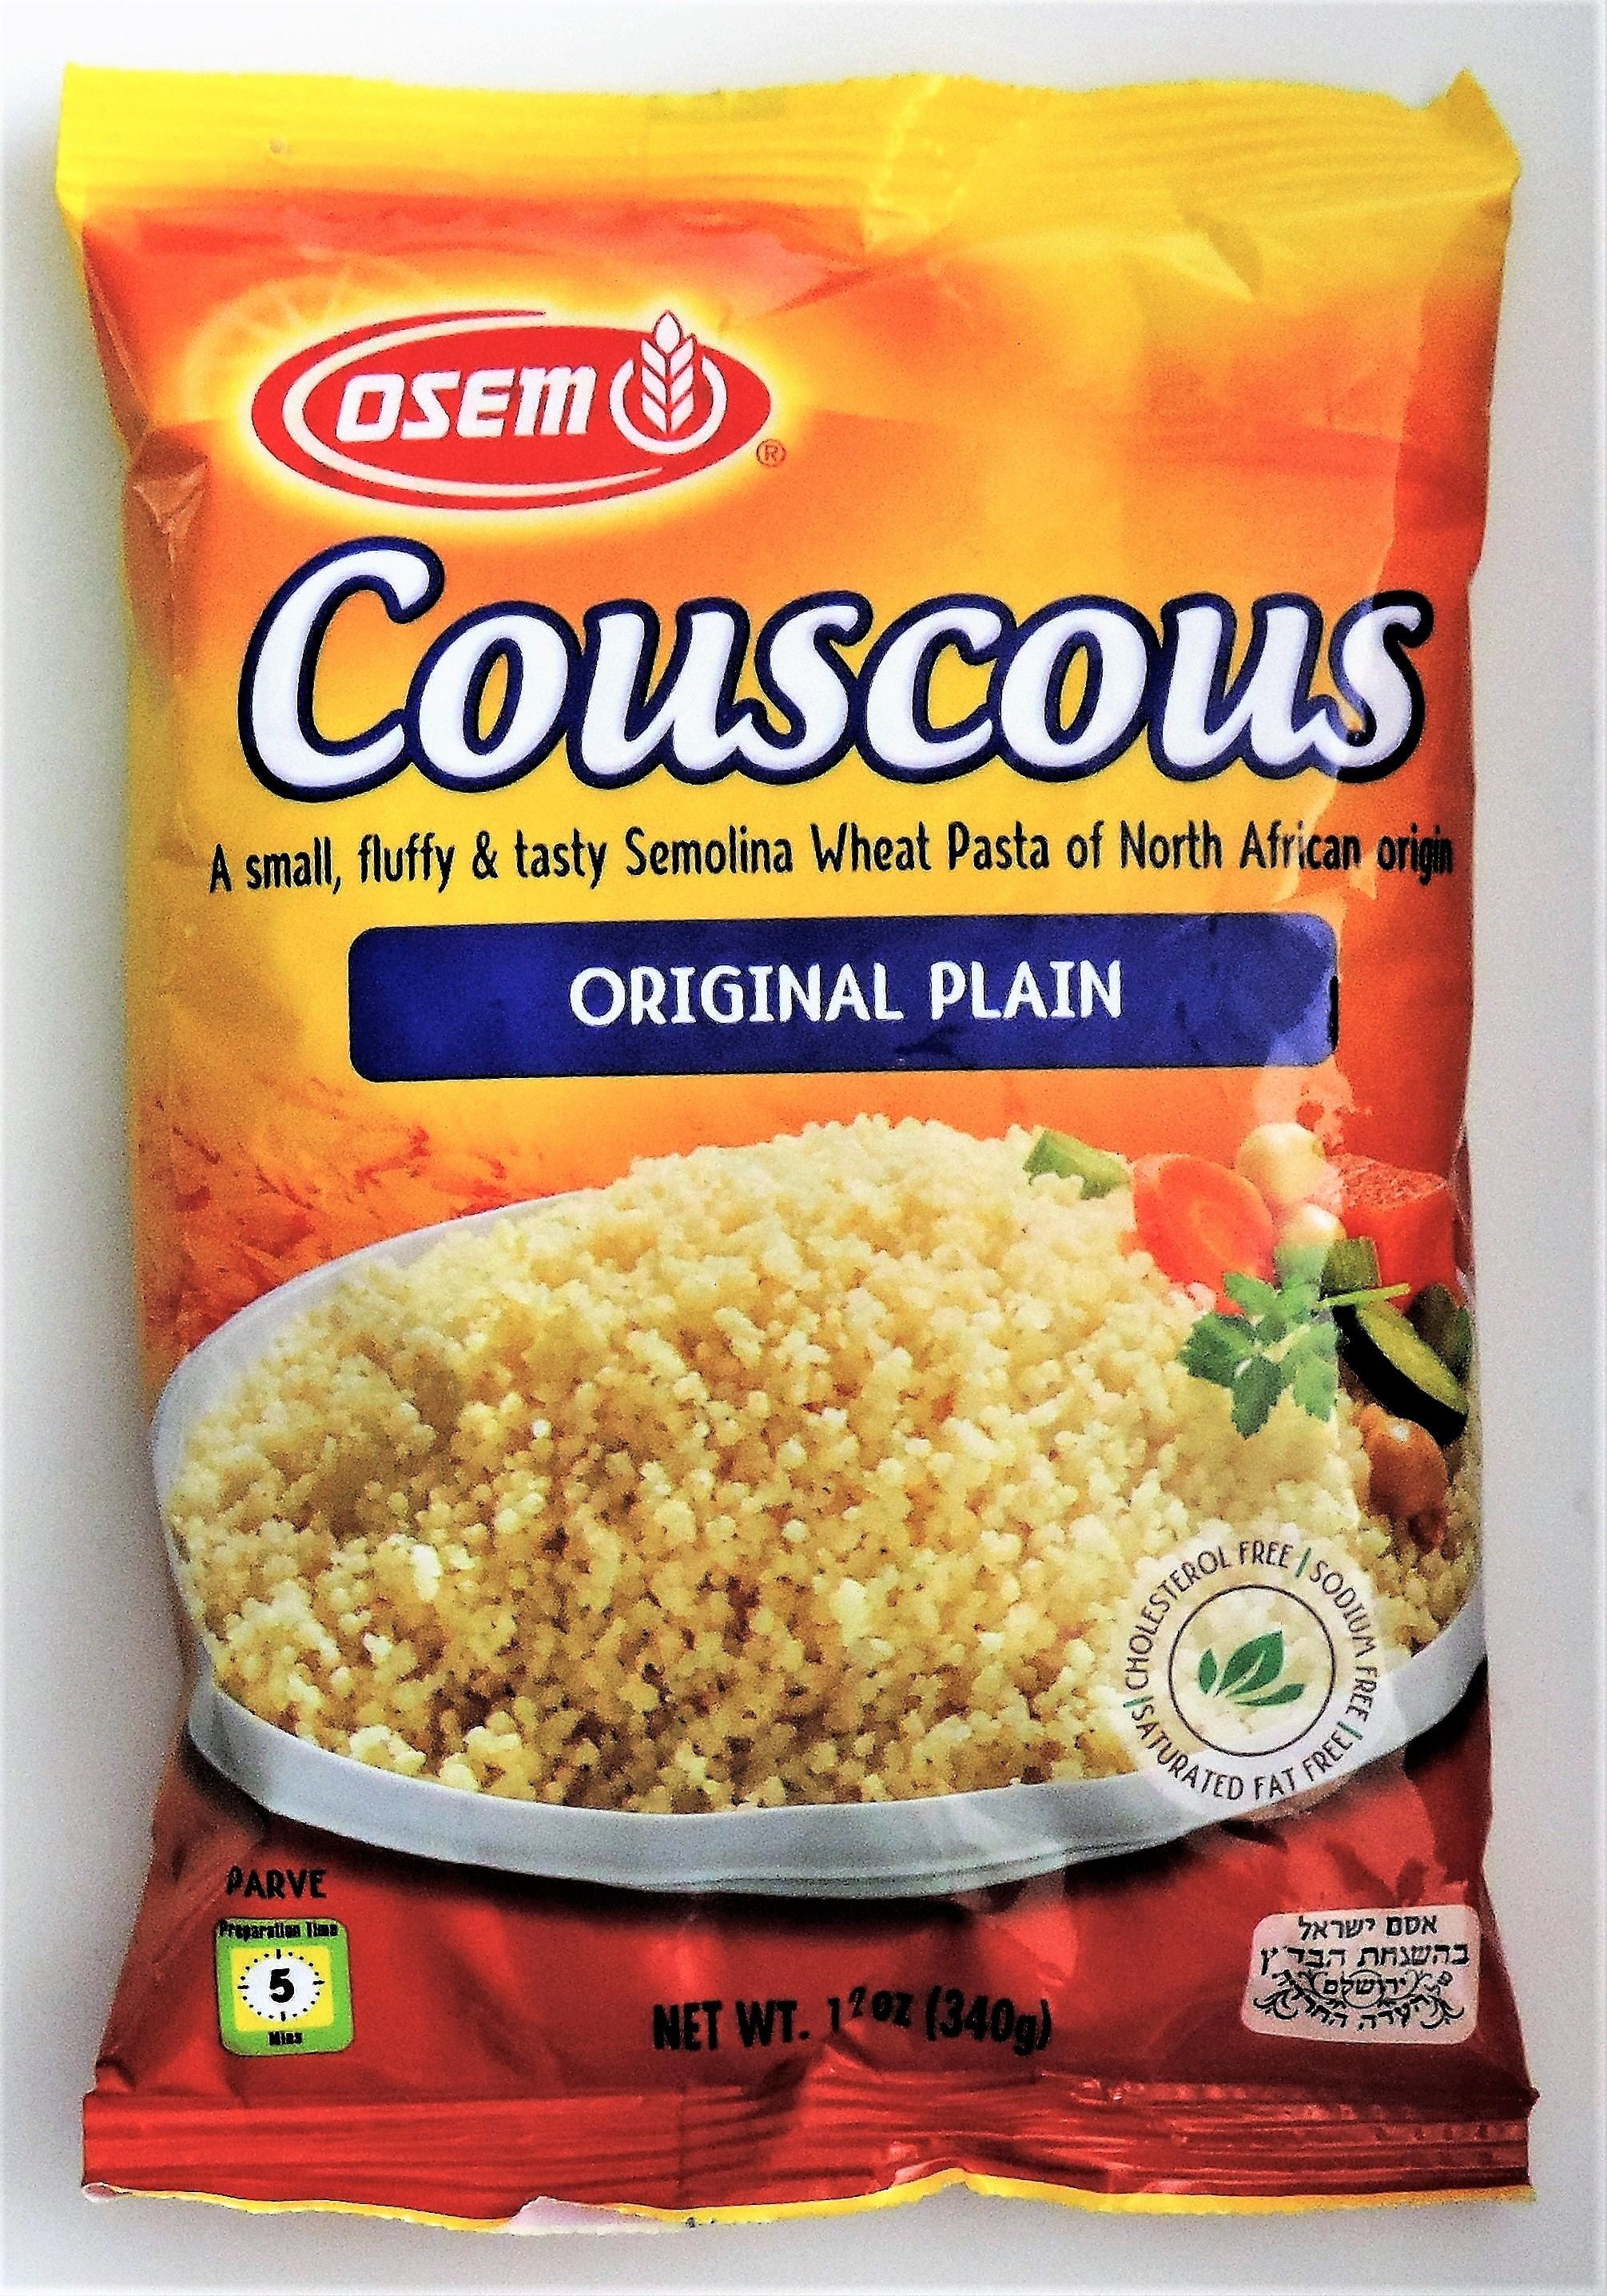 Couscous Plain Osem couscous original plain 12 ounce bag sisterspd